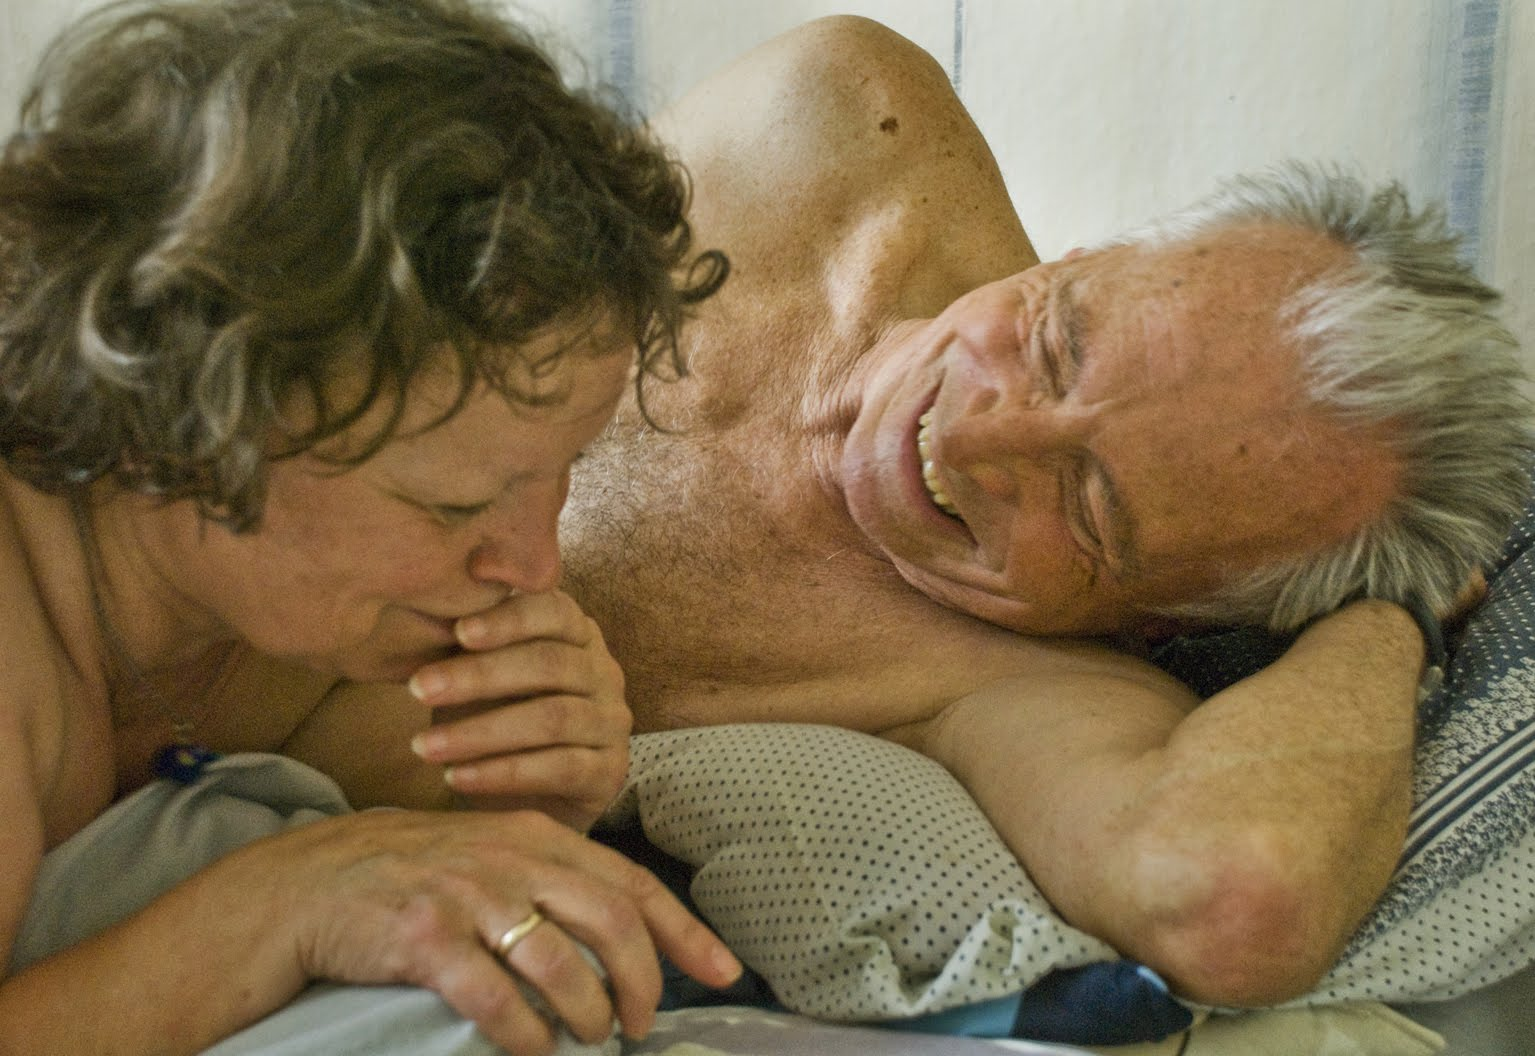 Absolutely old people having oral sex something